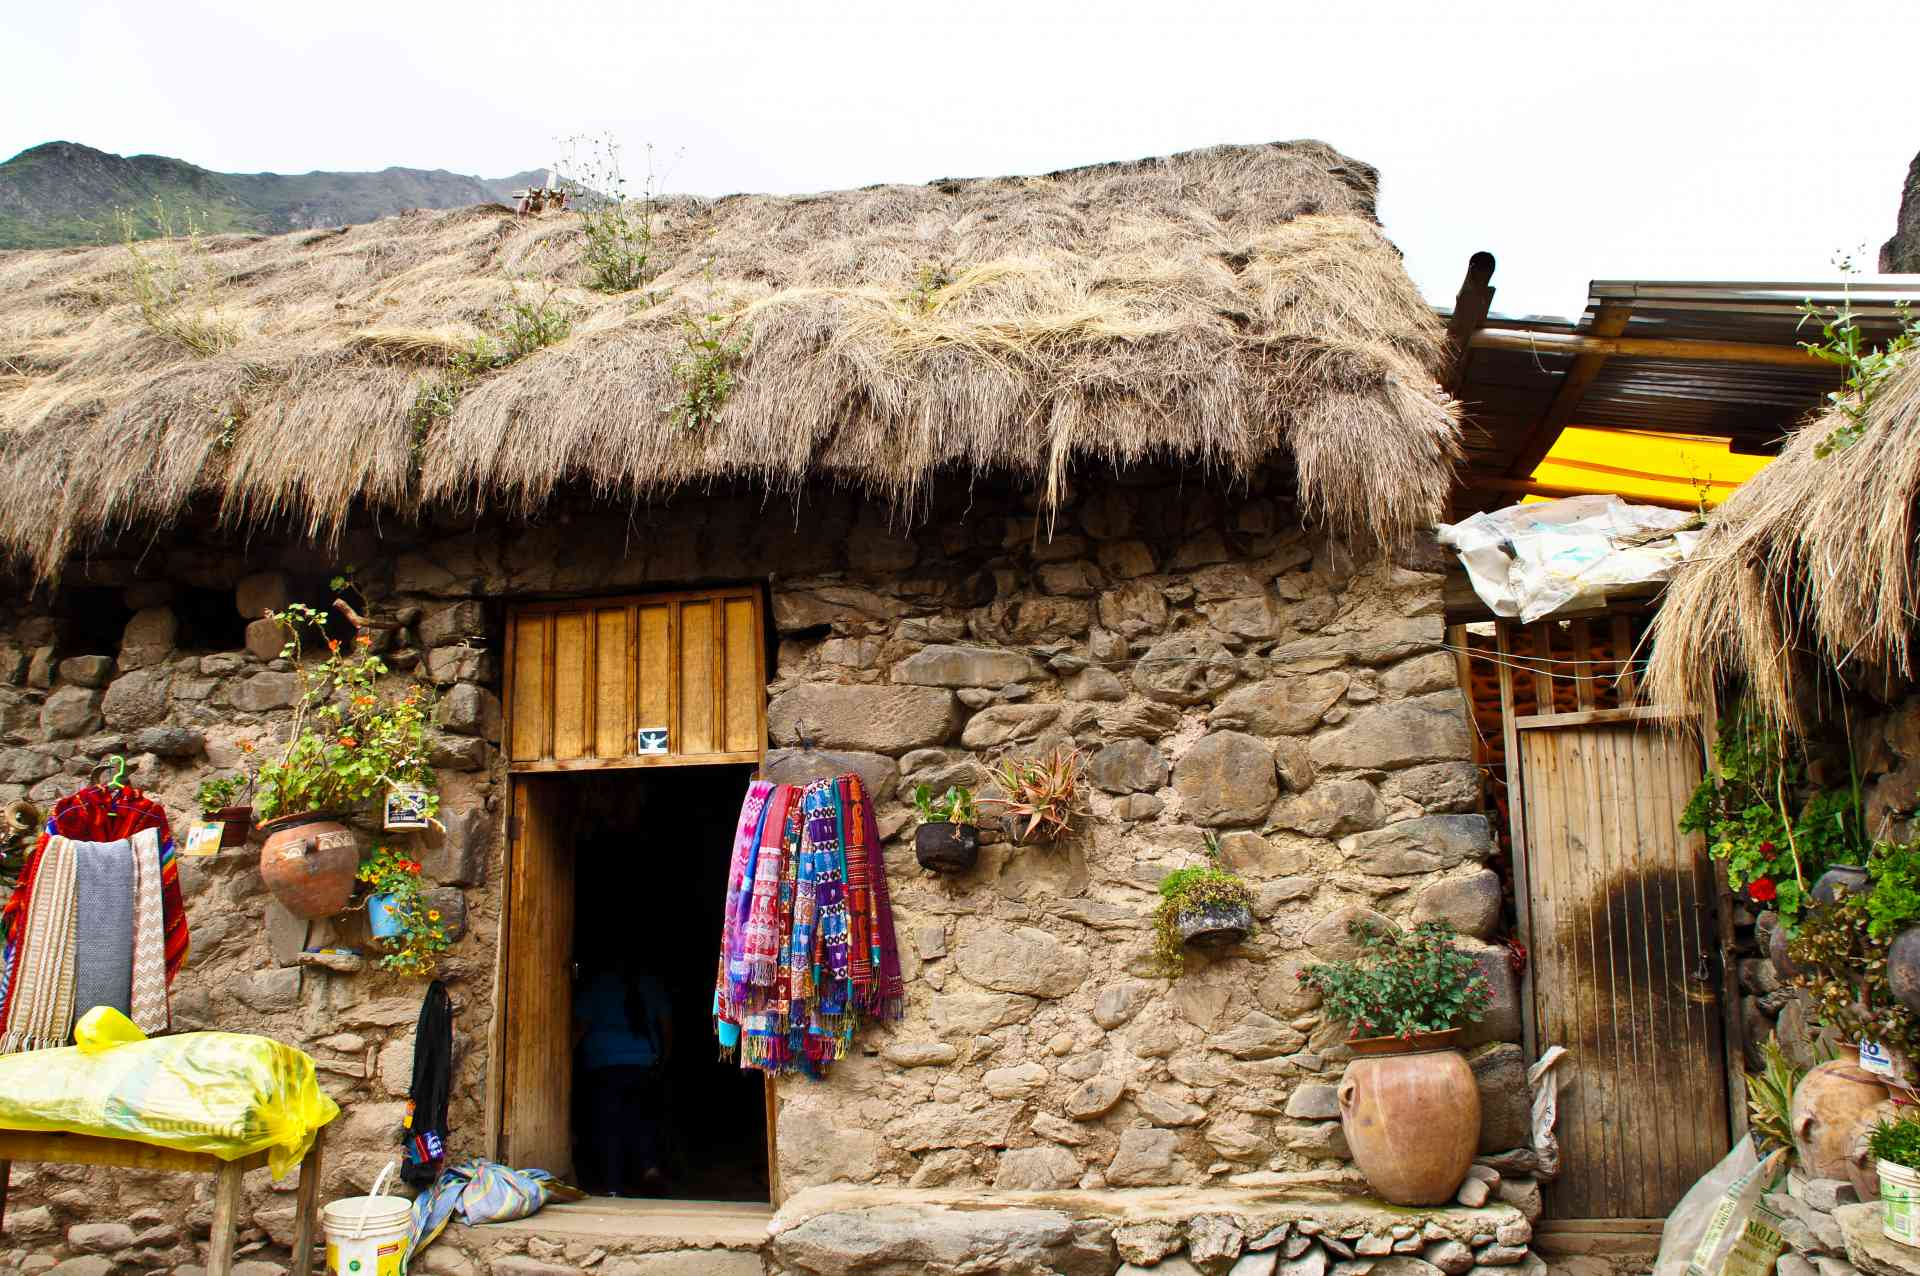 Local village in Peru by Priscilla Aster